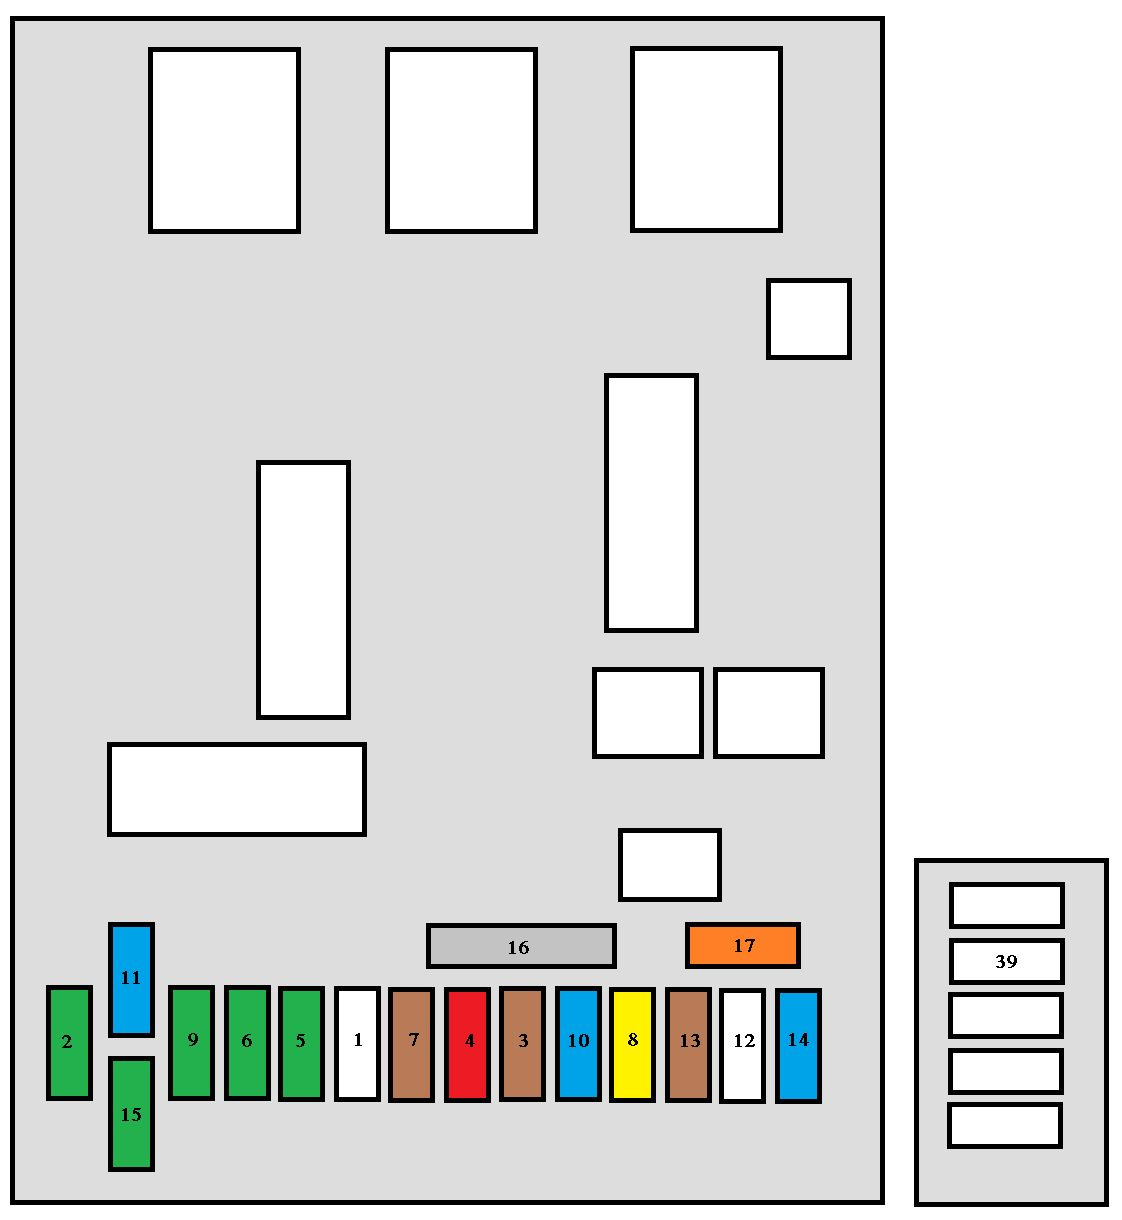 fuse box diagram peugeot 206 [ 1122 x 1220 Pixel ]